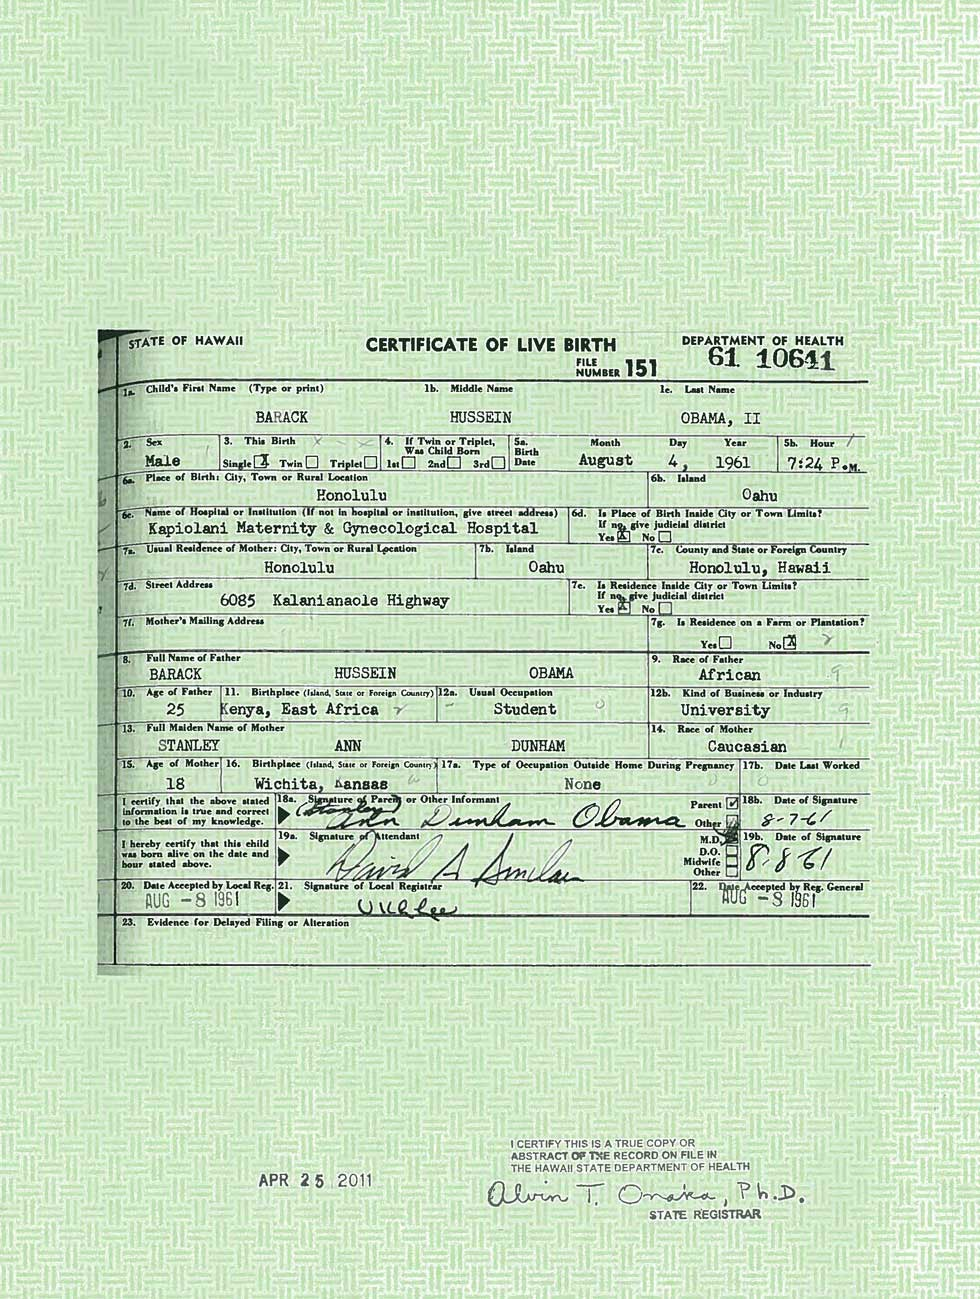 Obamas Birth Certificate May 4 2011 Sonoran News